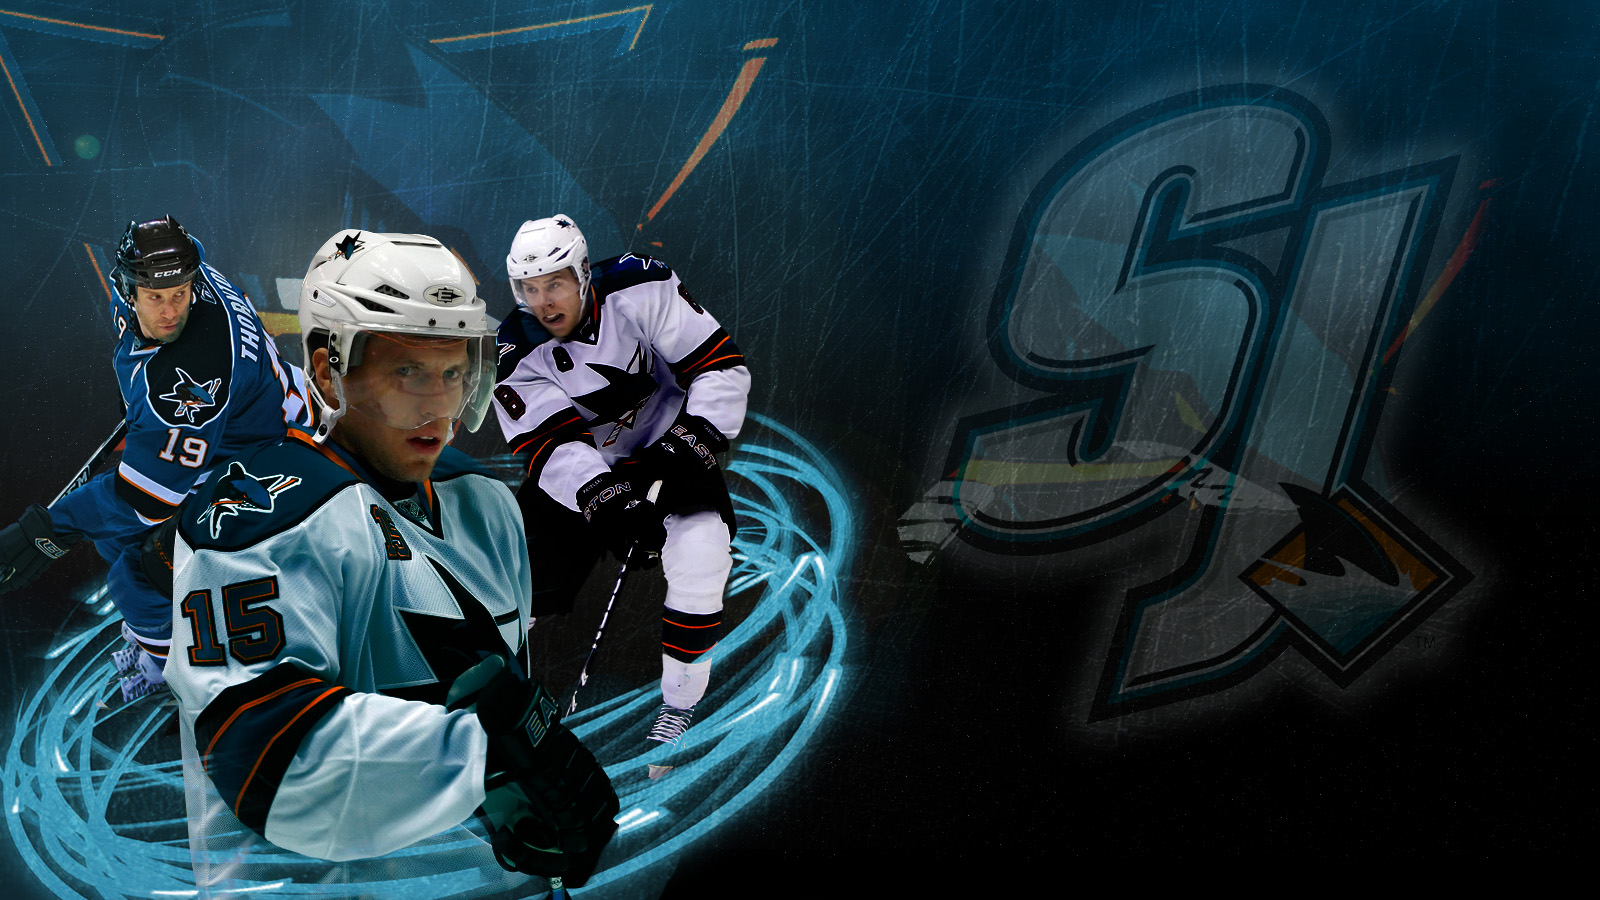 Hockey San Jose Sharks Trio Top 457804 With Resolutions 1600900 1600x900